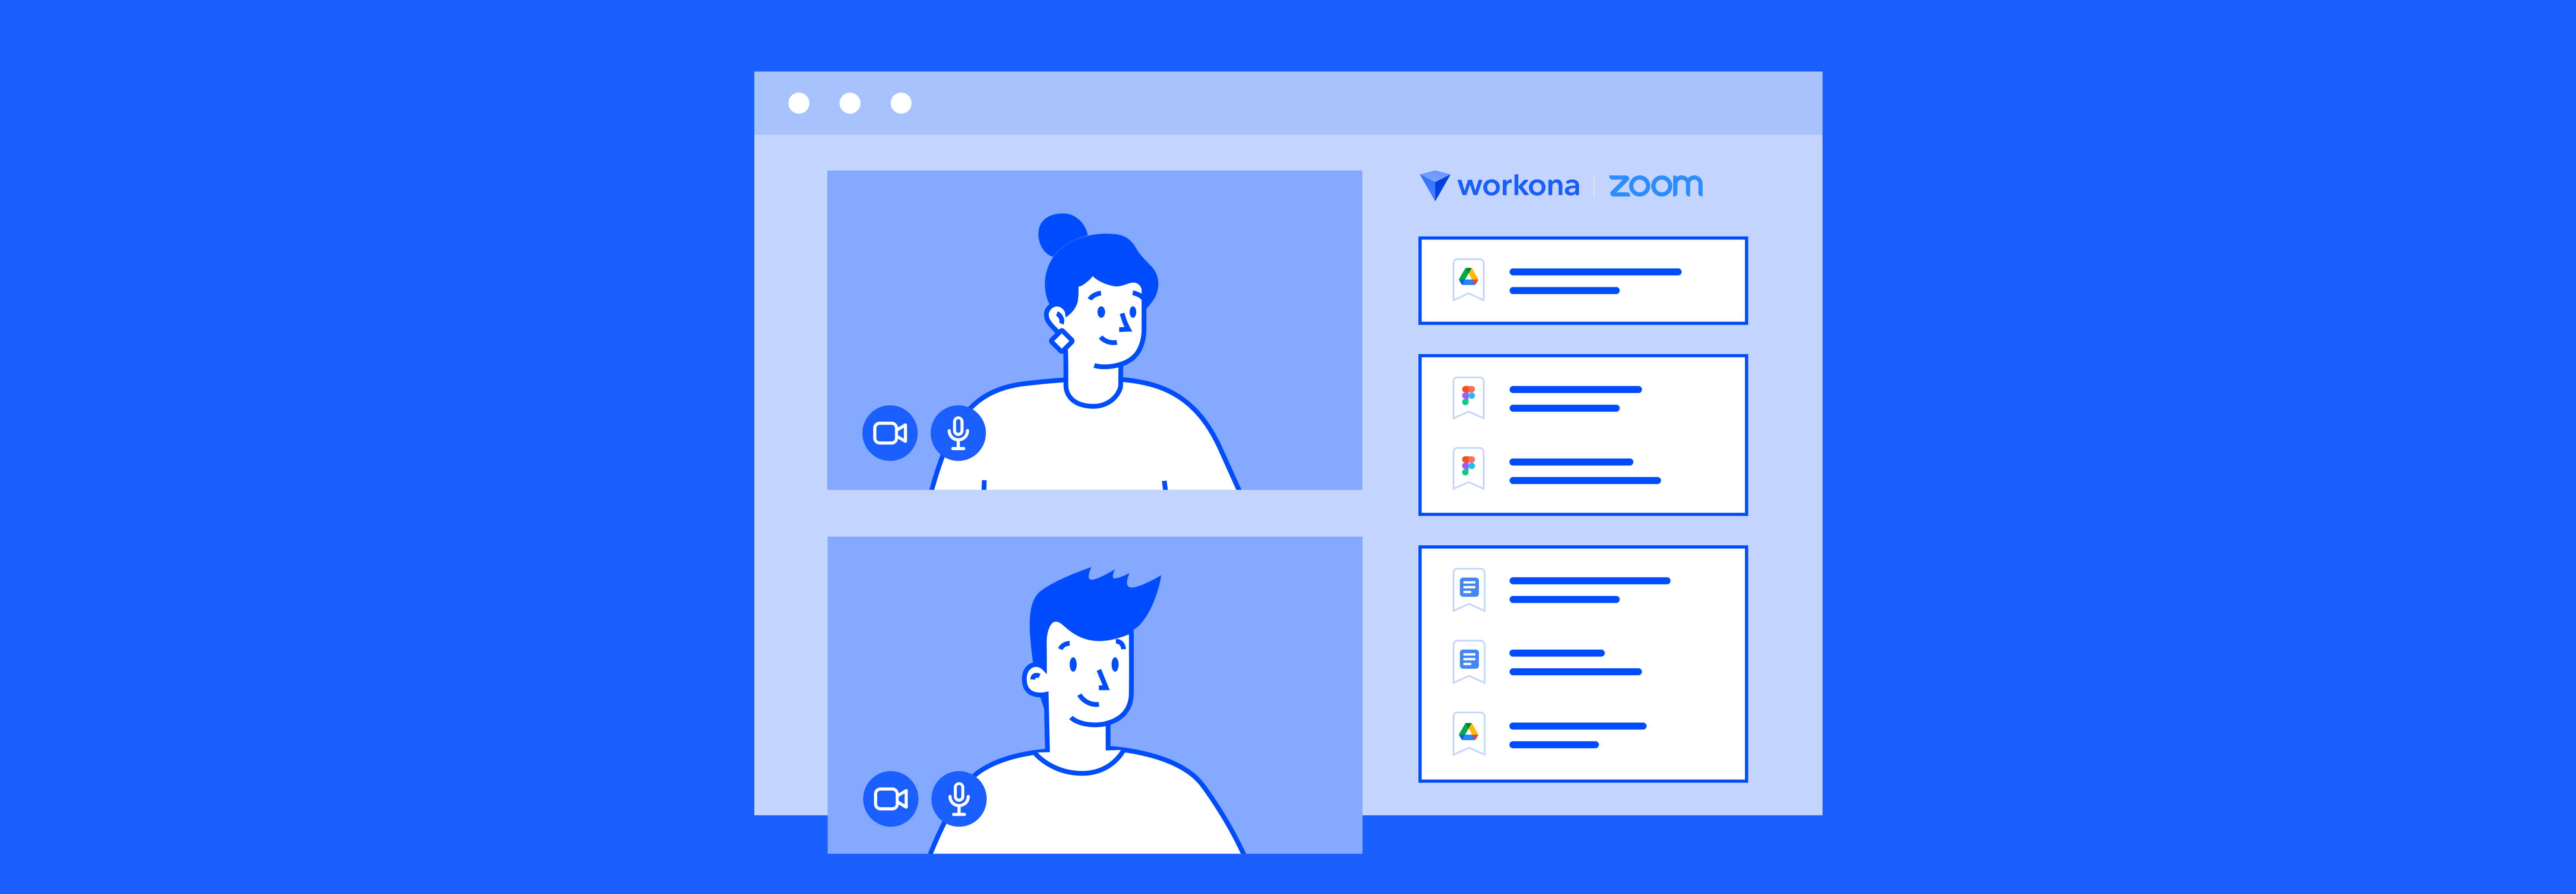 Illustration of a man and woman chatting in a Zoom video call, with the Workona app for Zoom visible